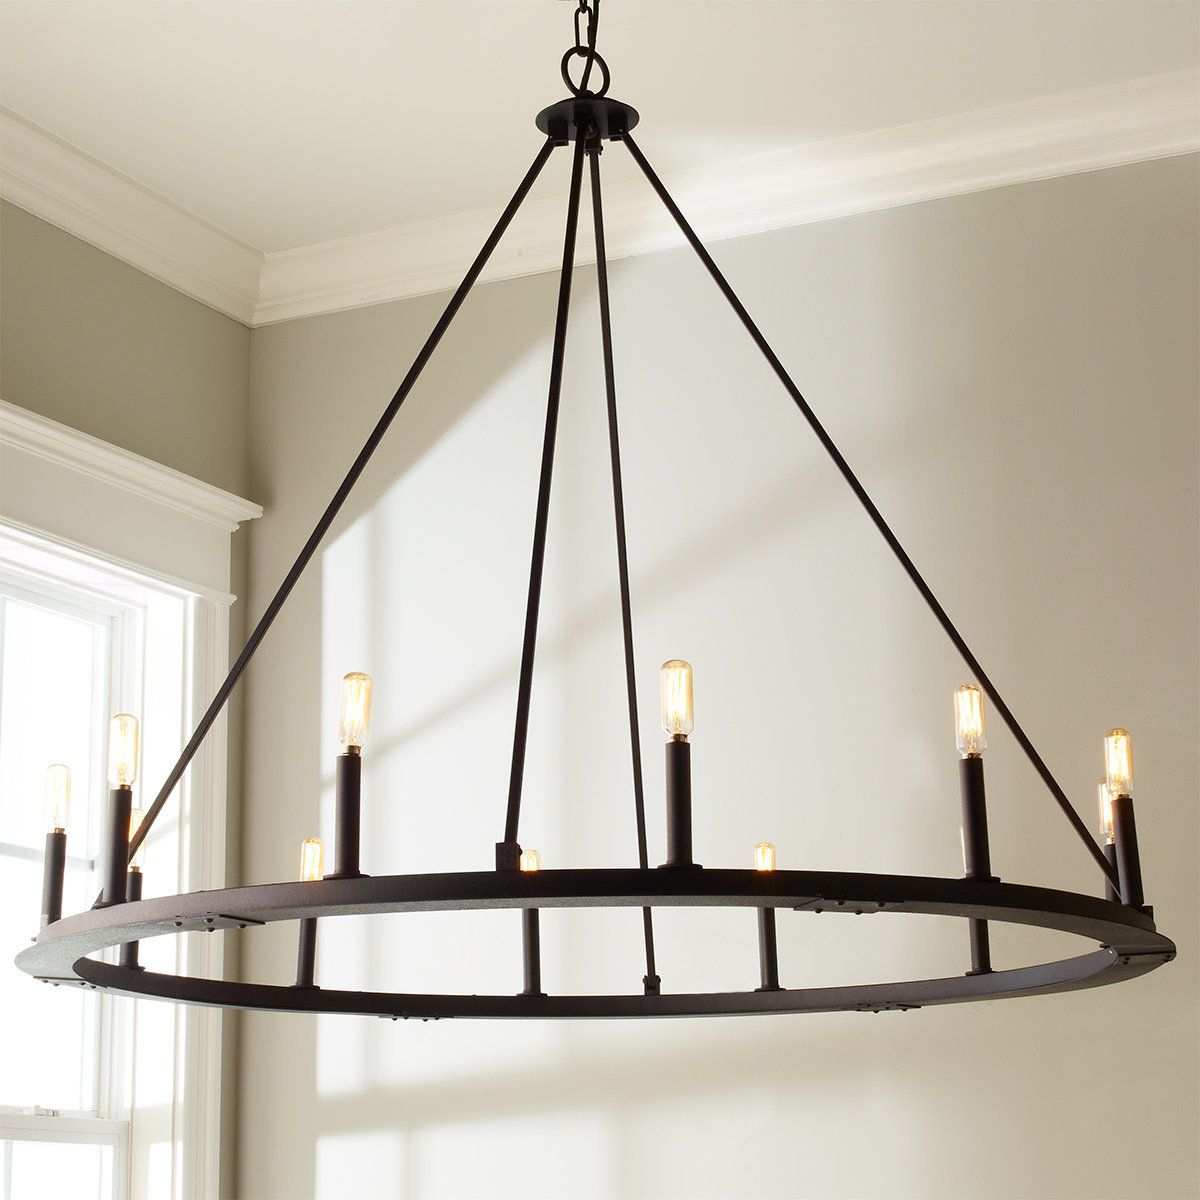 Check Out Minimalist Iron Ring Chandelier – 12 Light From Within Shayla 12 Light Wagon Wheel Chandeliers (View 7 of 30)